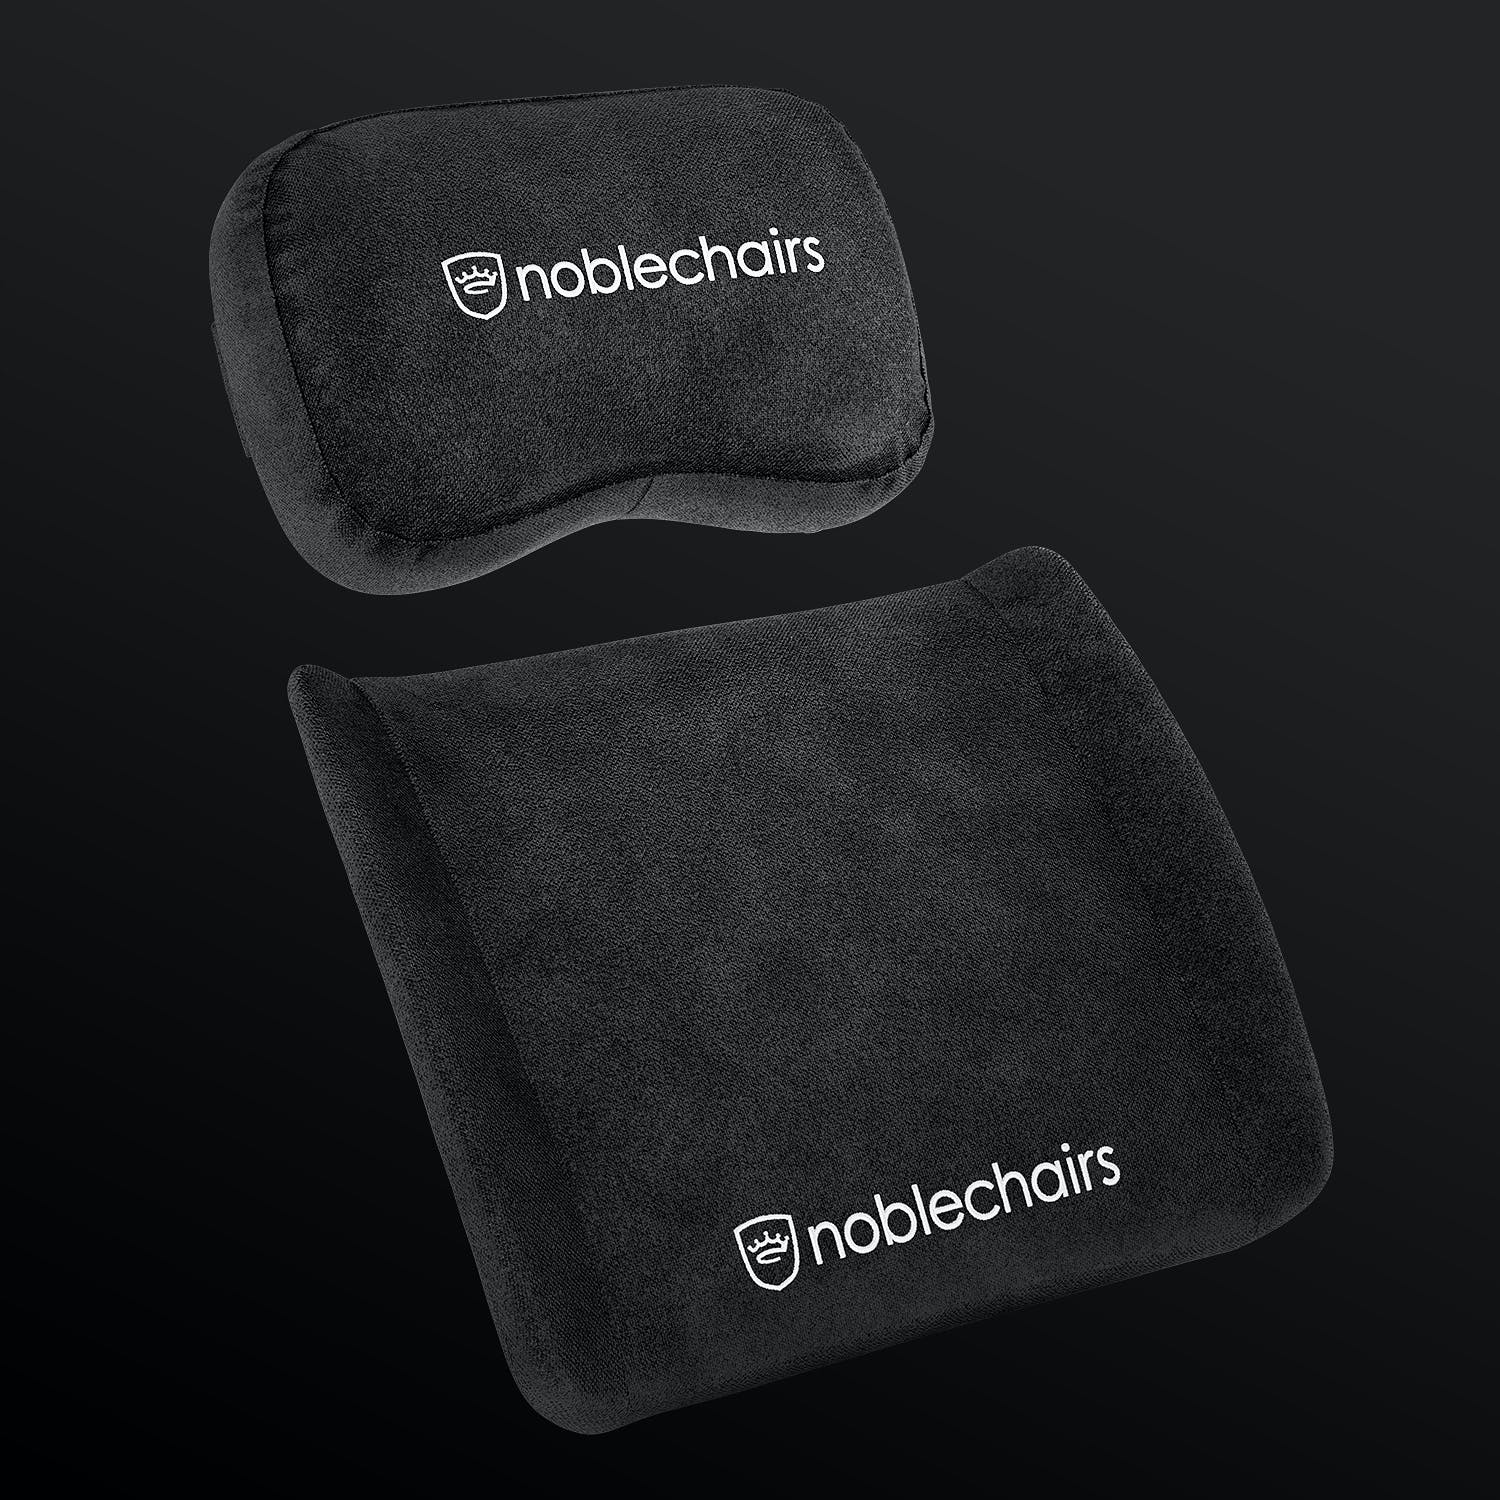 Noblechairs - Memory Foam Cushion Set